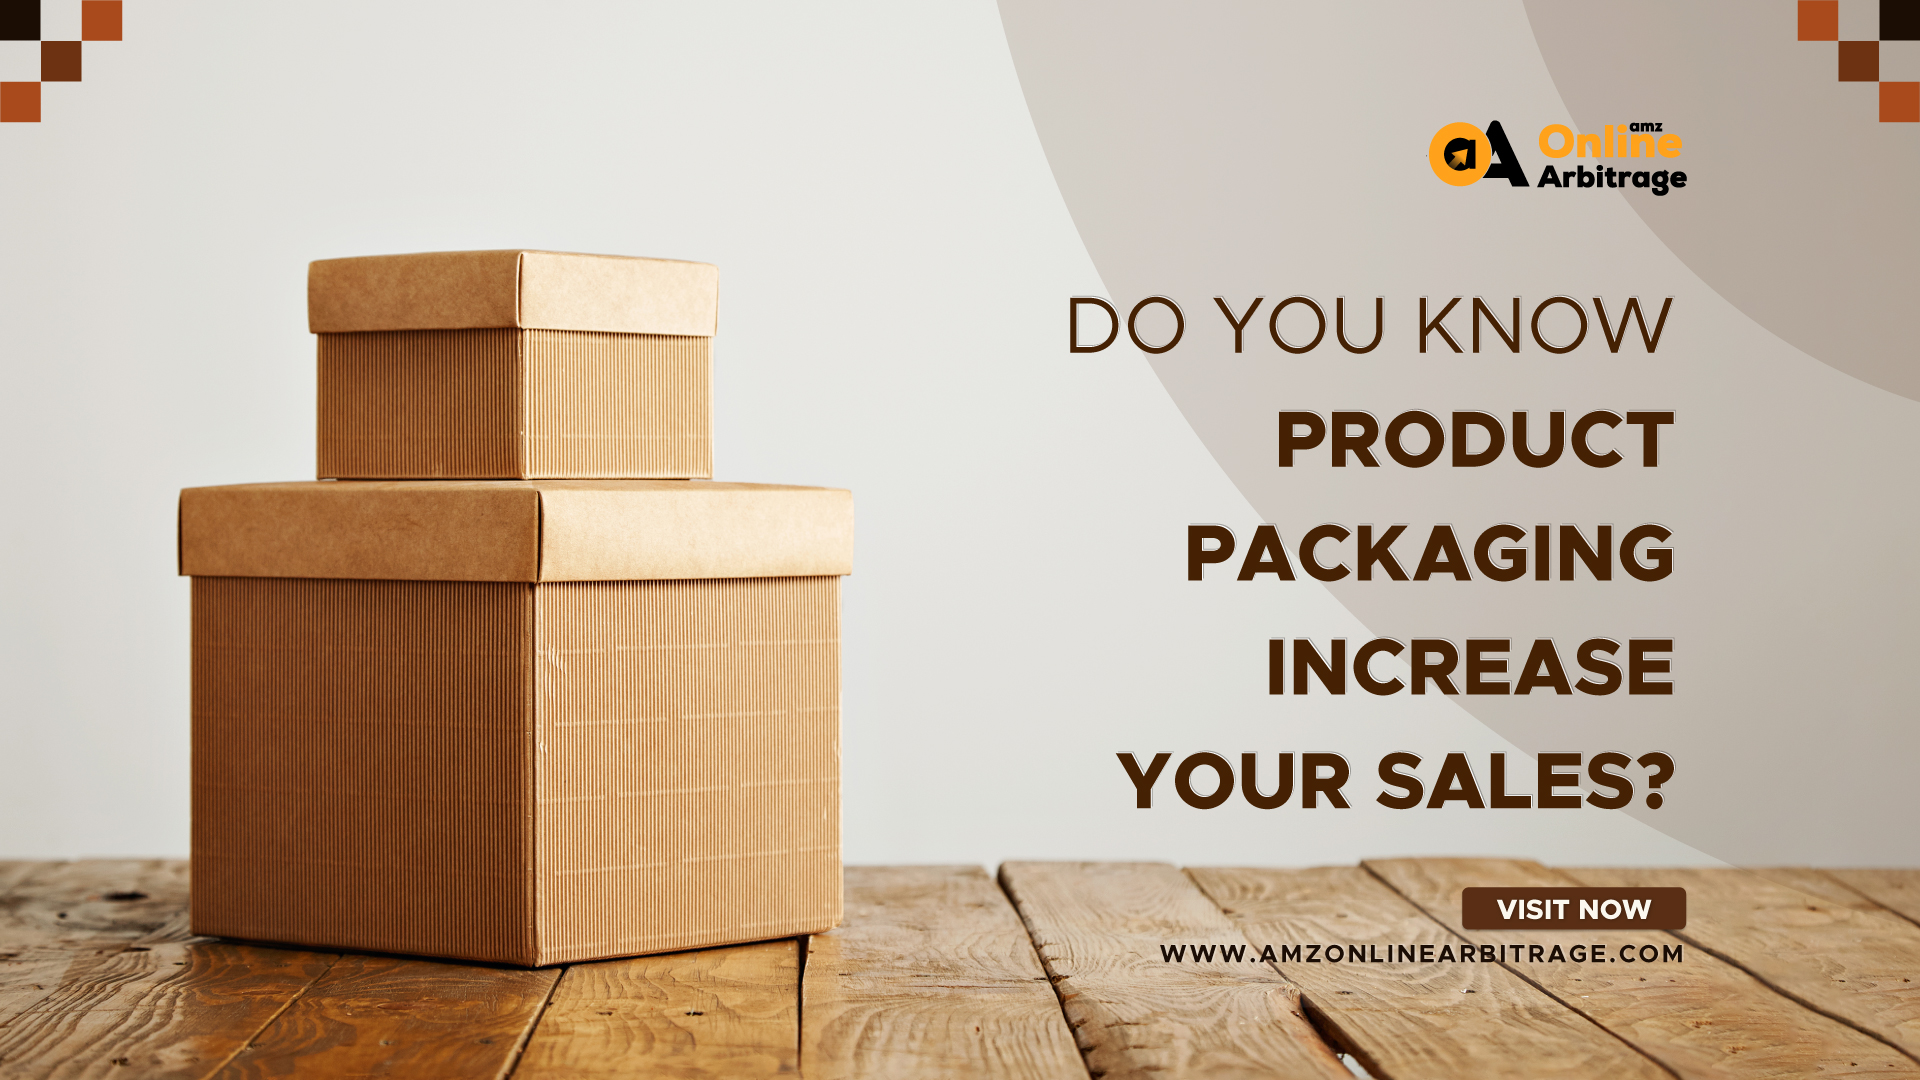 DO YOU KNOW PRODUCT PACKAGING INCREASE YOUR SALES?